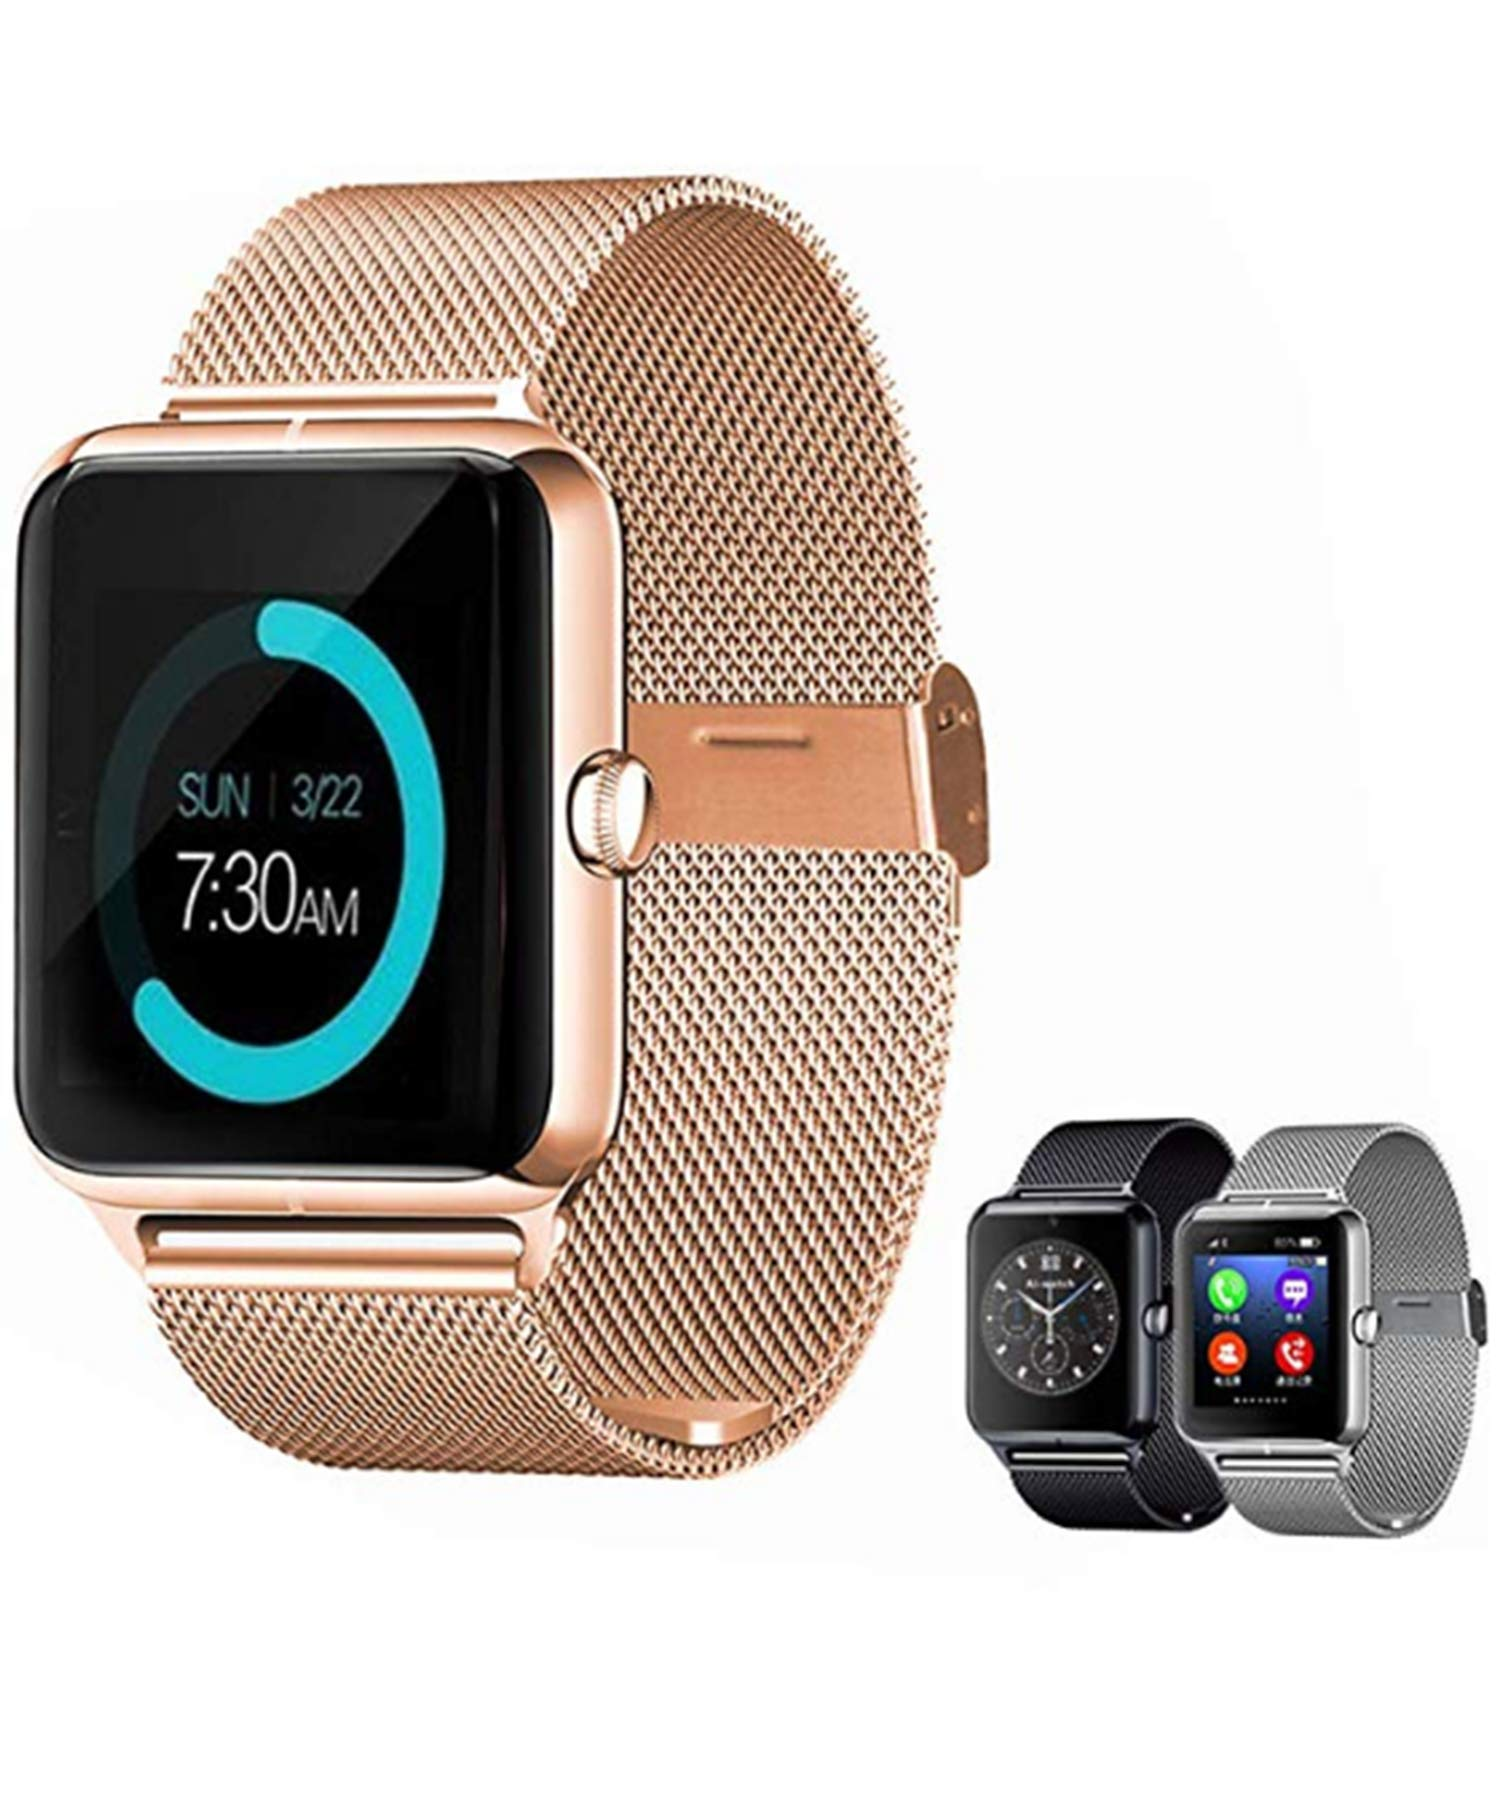 Yirind Smart Bluetooth Watch, with Camera Touchscreen, Sport Wrist Watches for iPhone/Android/iOS,Gold